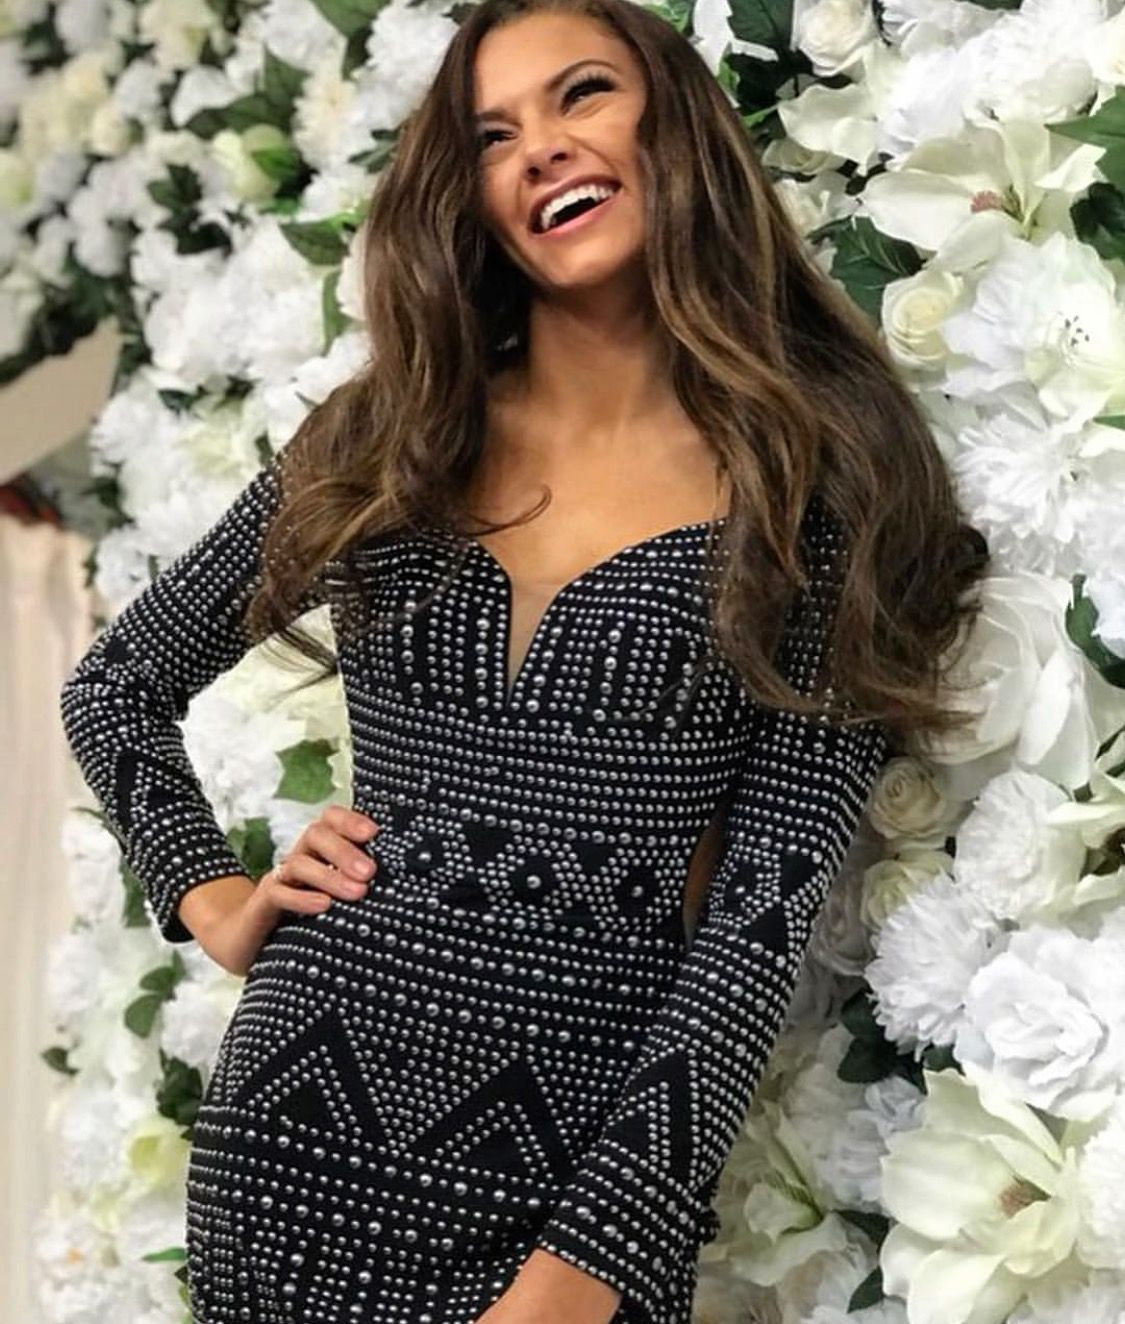 39136669a2 A Sunday well spent brings a week of content!!! ♥ ♥  Muzzies  Muzziesprom   lafemme  homecoming  prom  houston  texas  shop  flowers  flowerwall